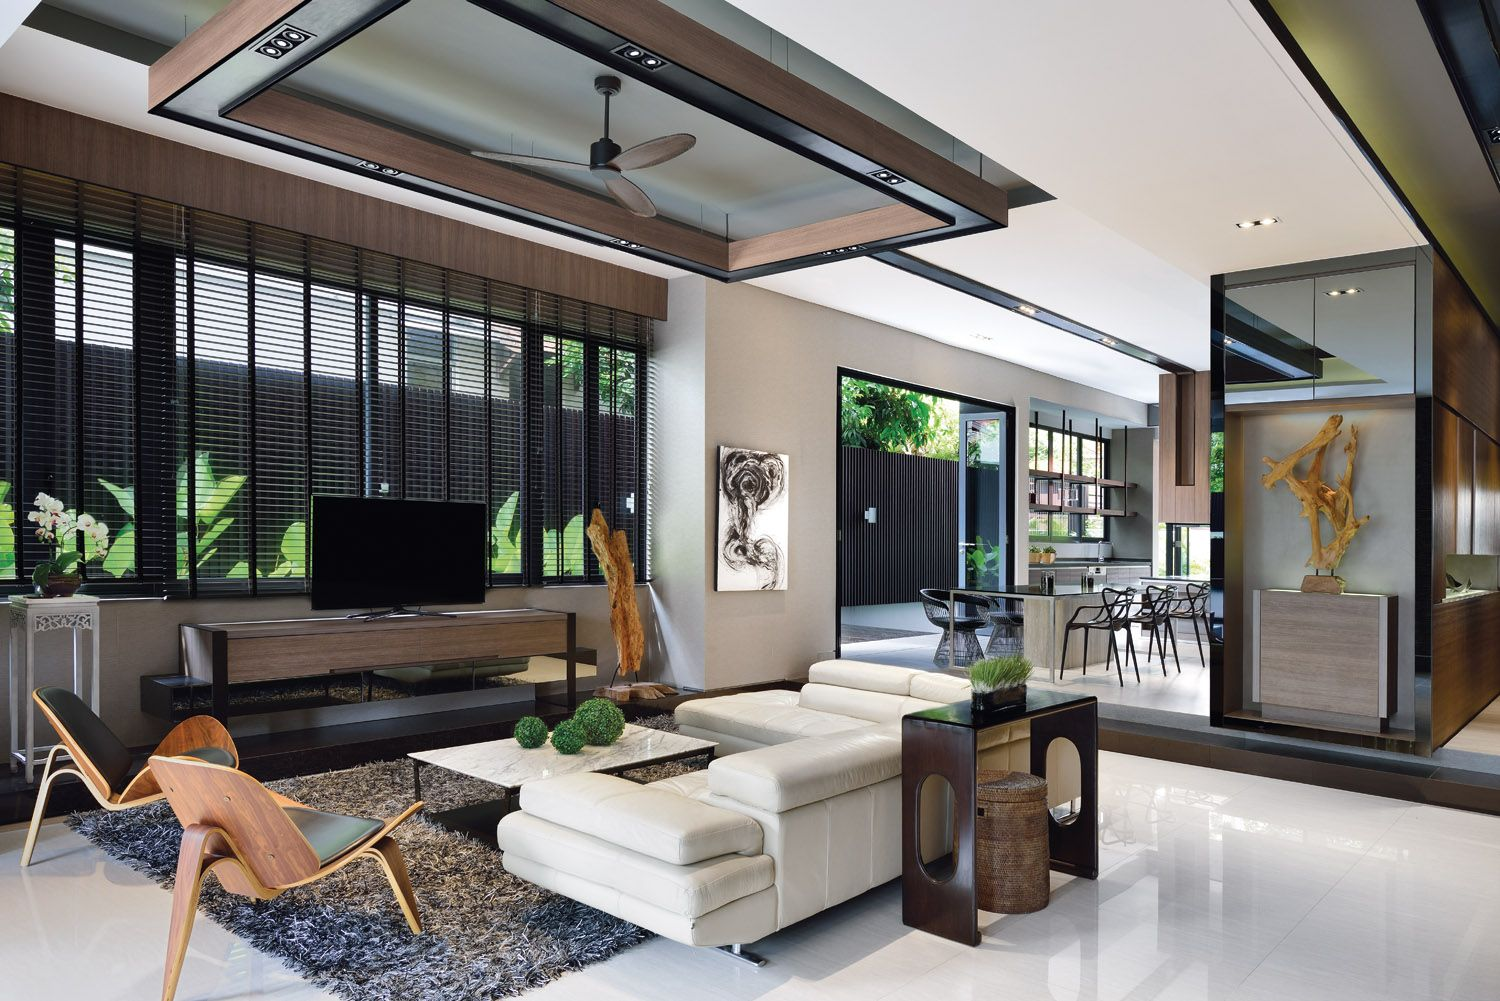 Home Tour A Resort Style Sanctuary For Minimalists